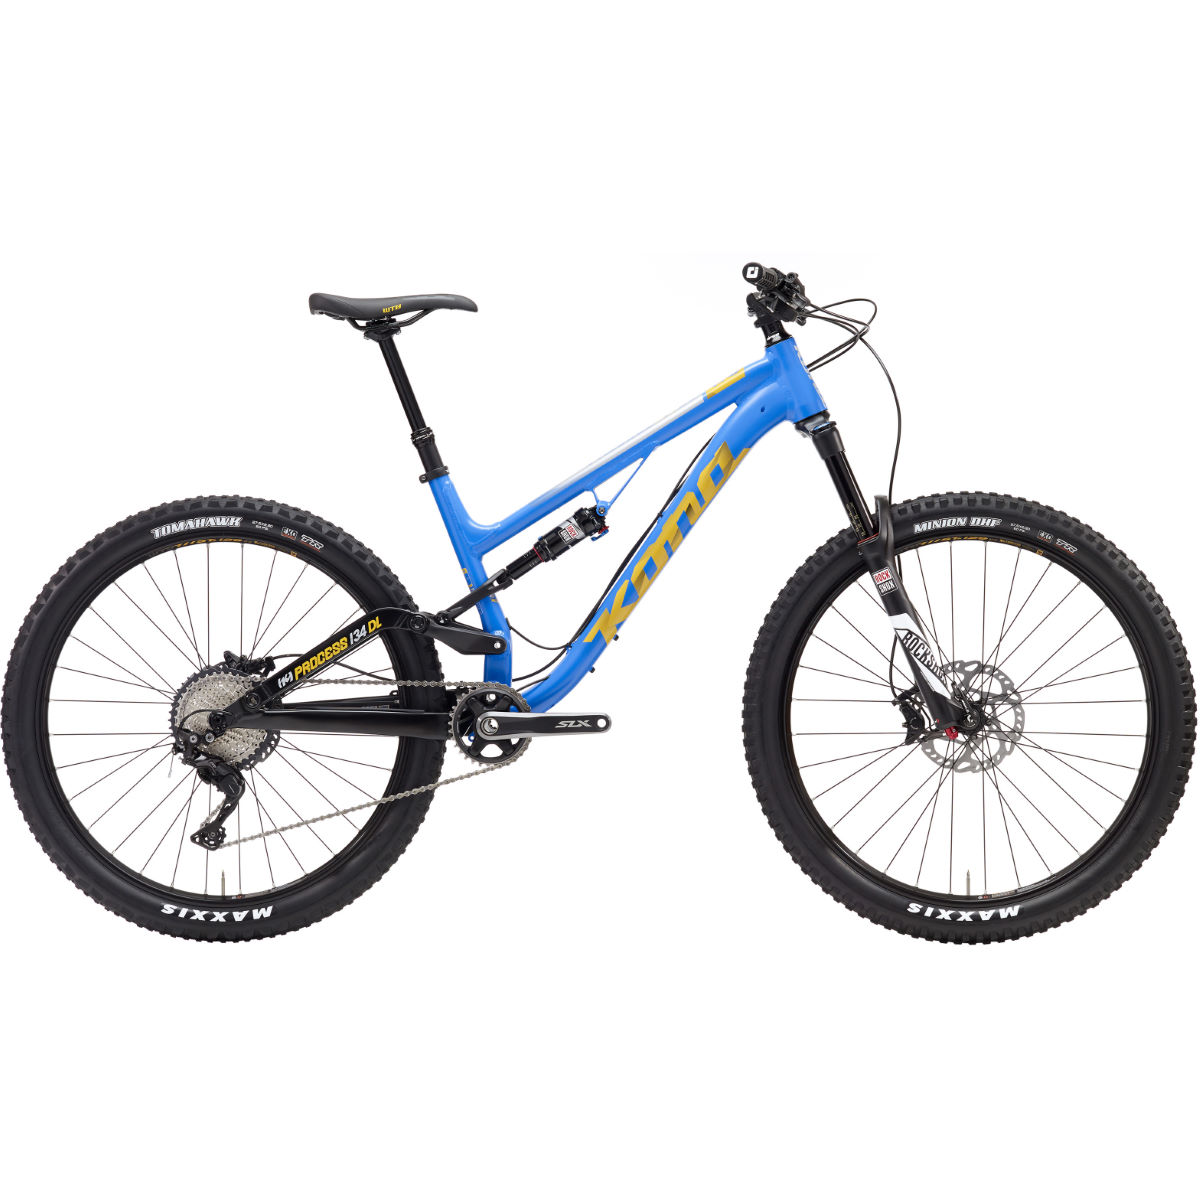 VTT Kona Process 134 DL (2017) - Medium Stock Bike Bleu